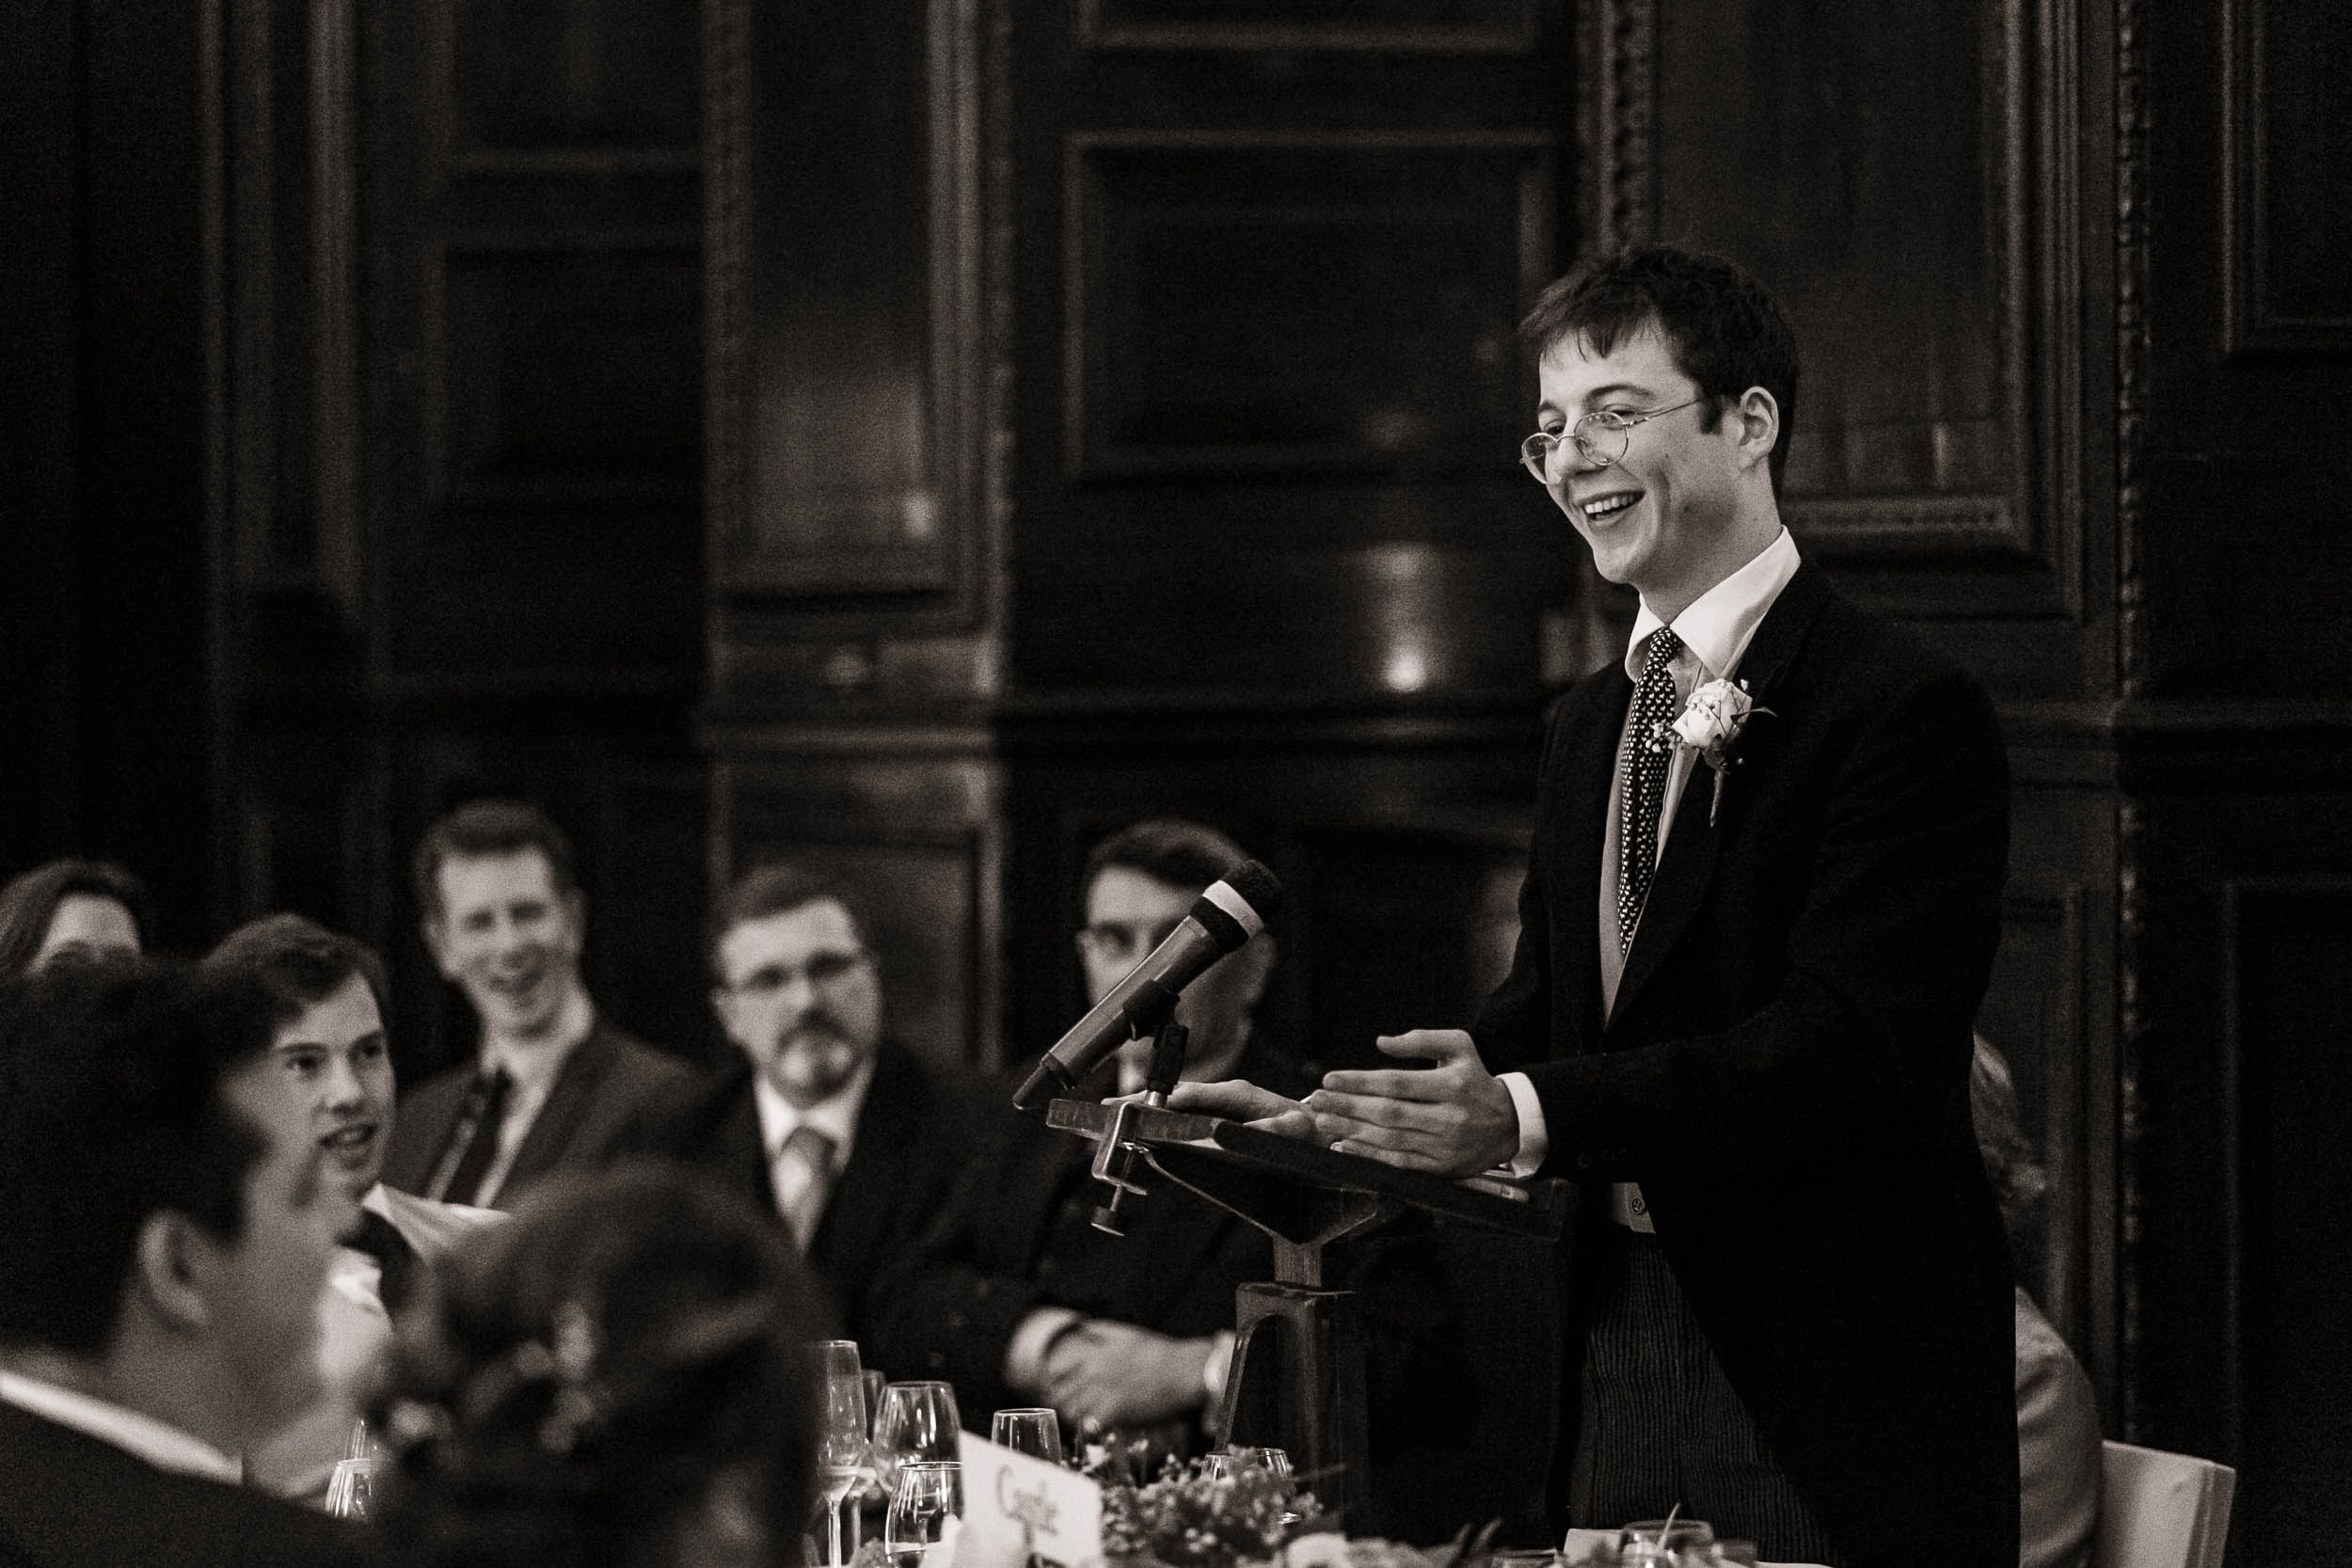 stationers-hall-wedding-photographer-london 110.jpg